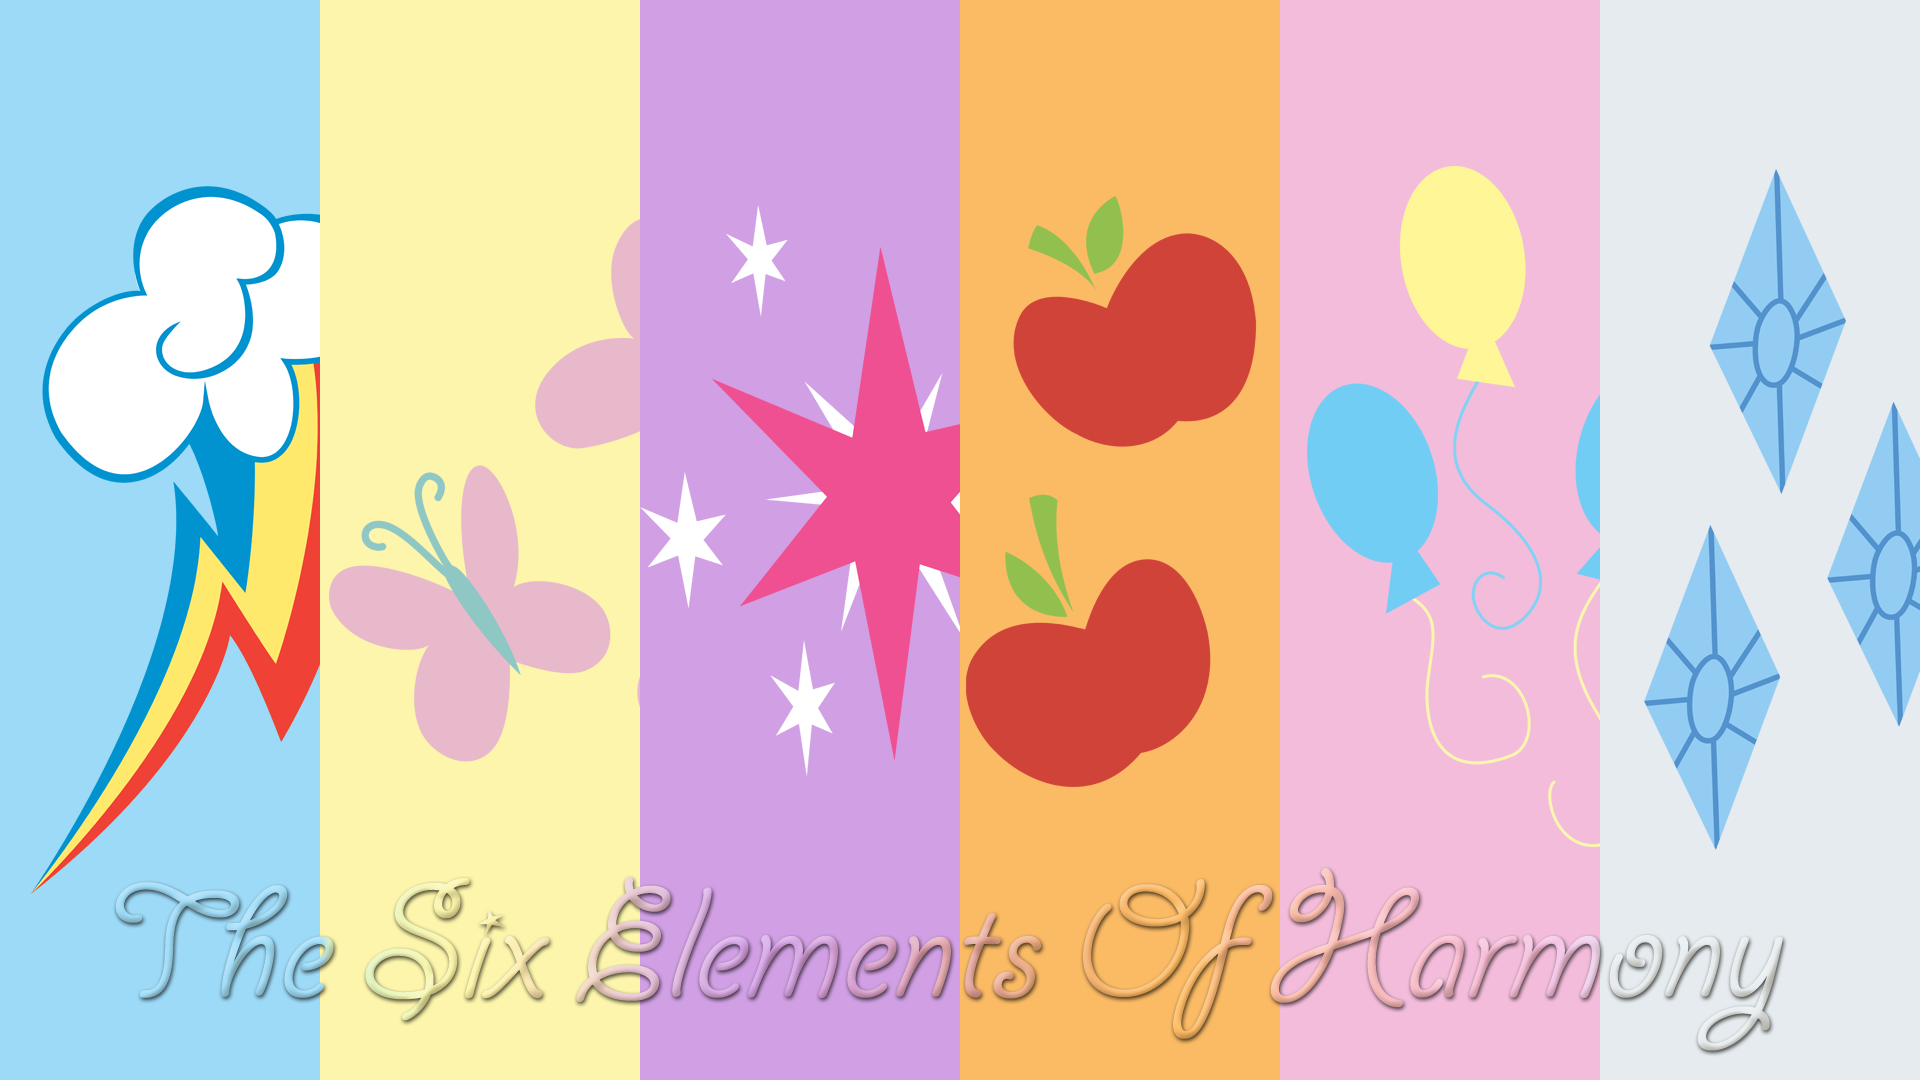 What Are The 6 Elements Of Art : The six elements of harmony by bluedragonhans on deviantart